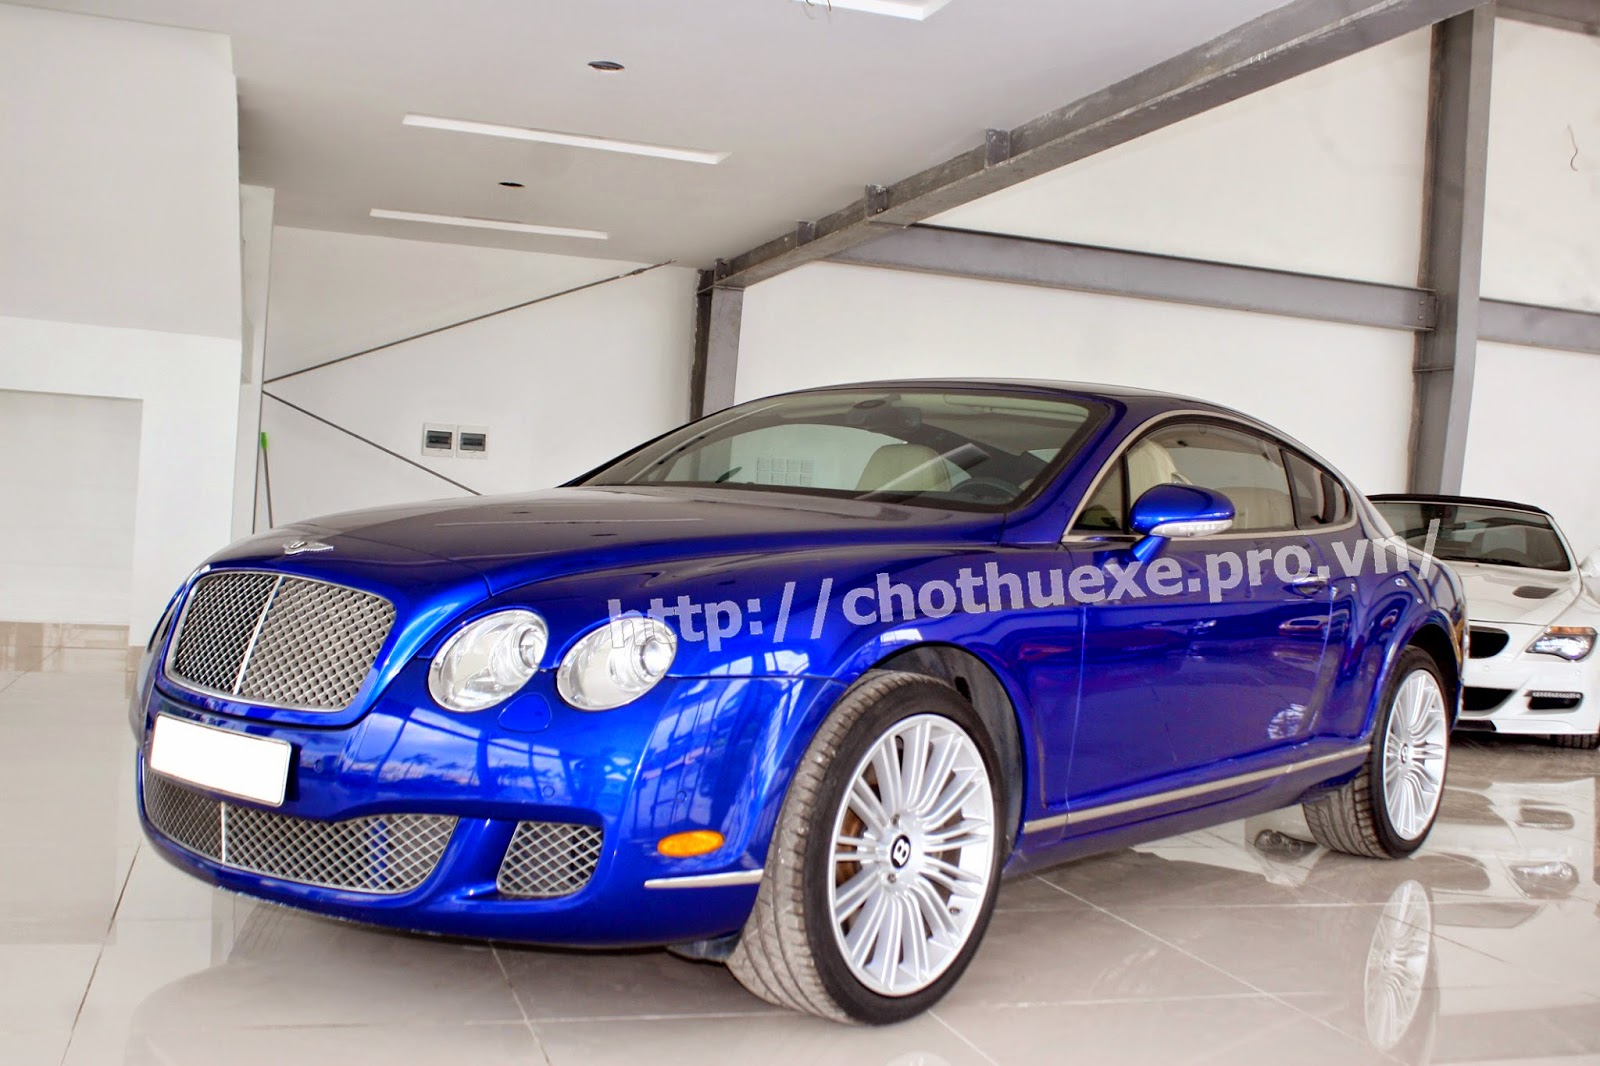 Cho thuê xe Bentley Coninental GT Speed